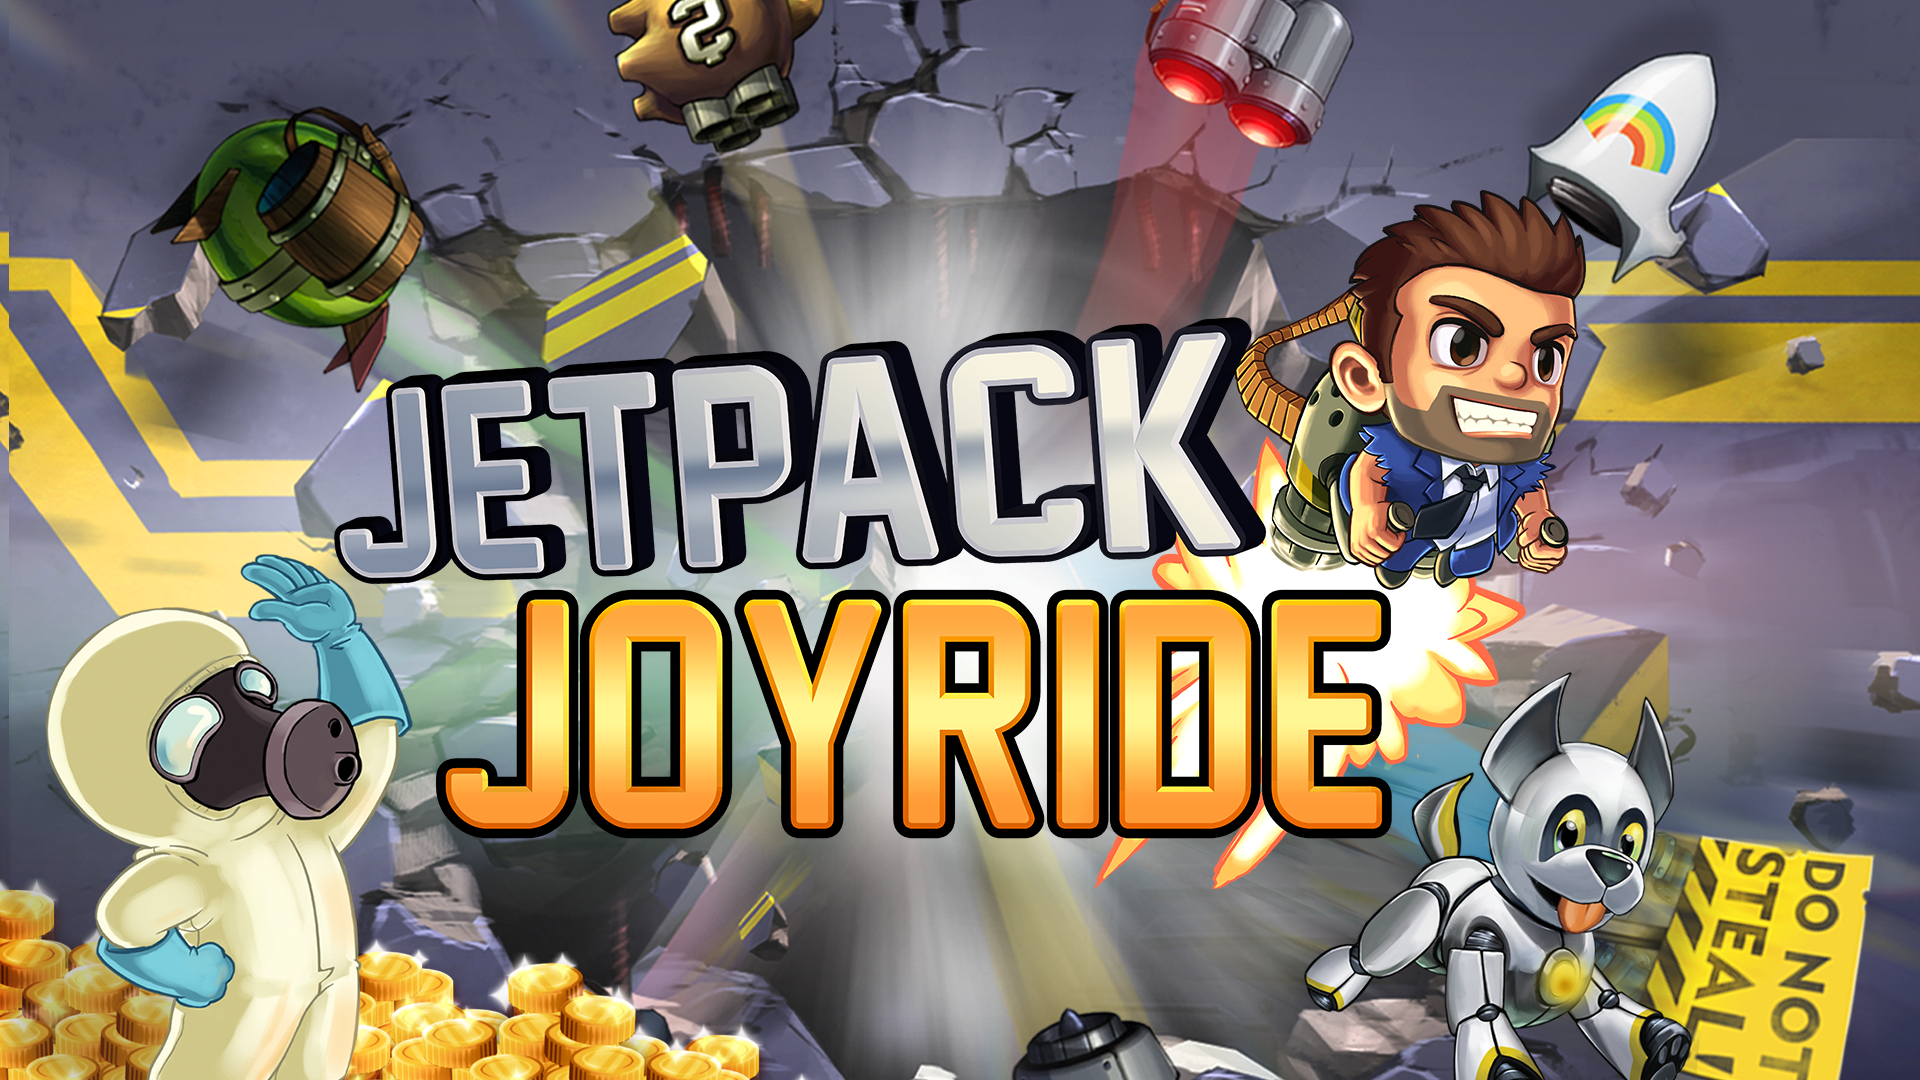 Amazon.com: Jetpack Joyride: Appstore for Android